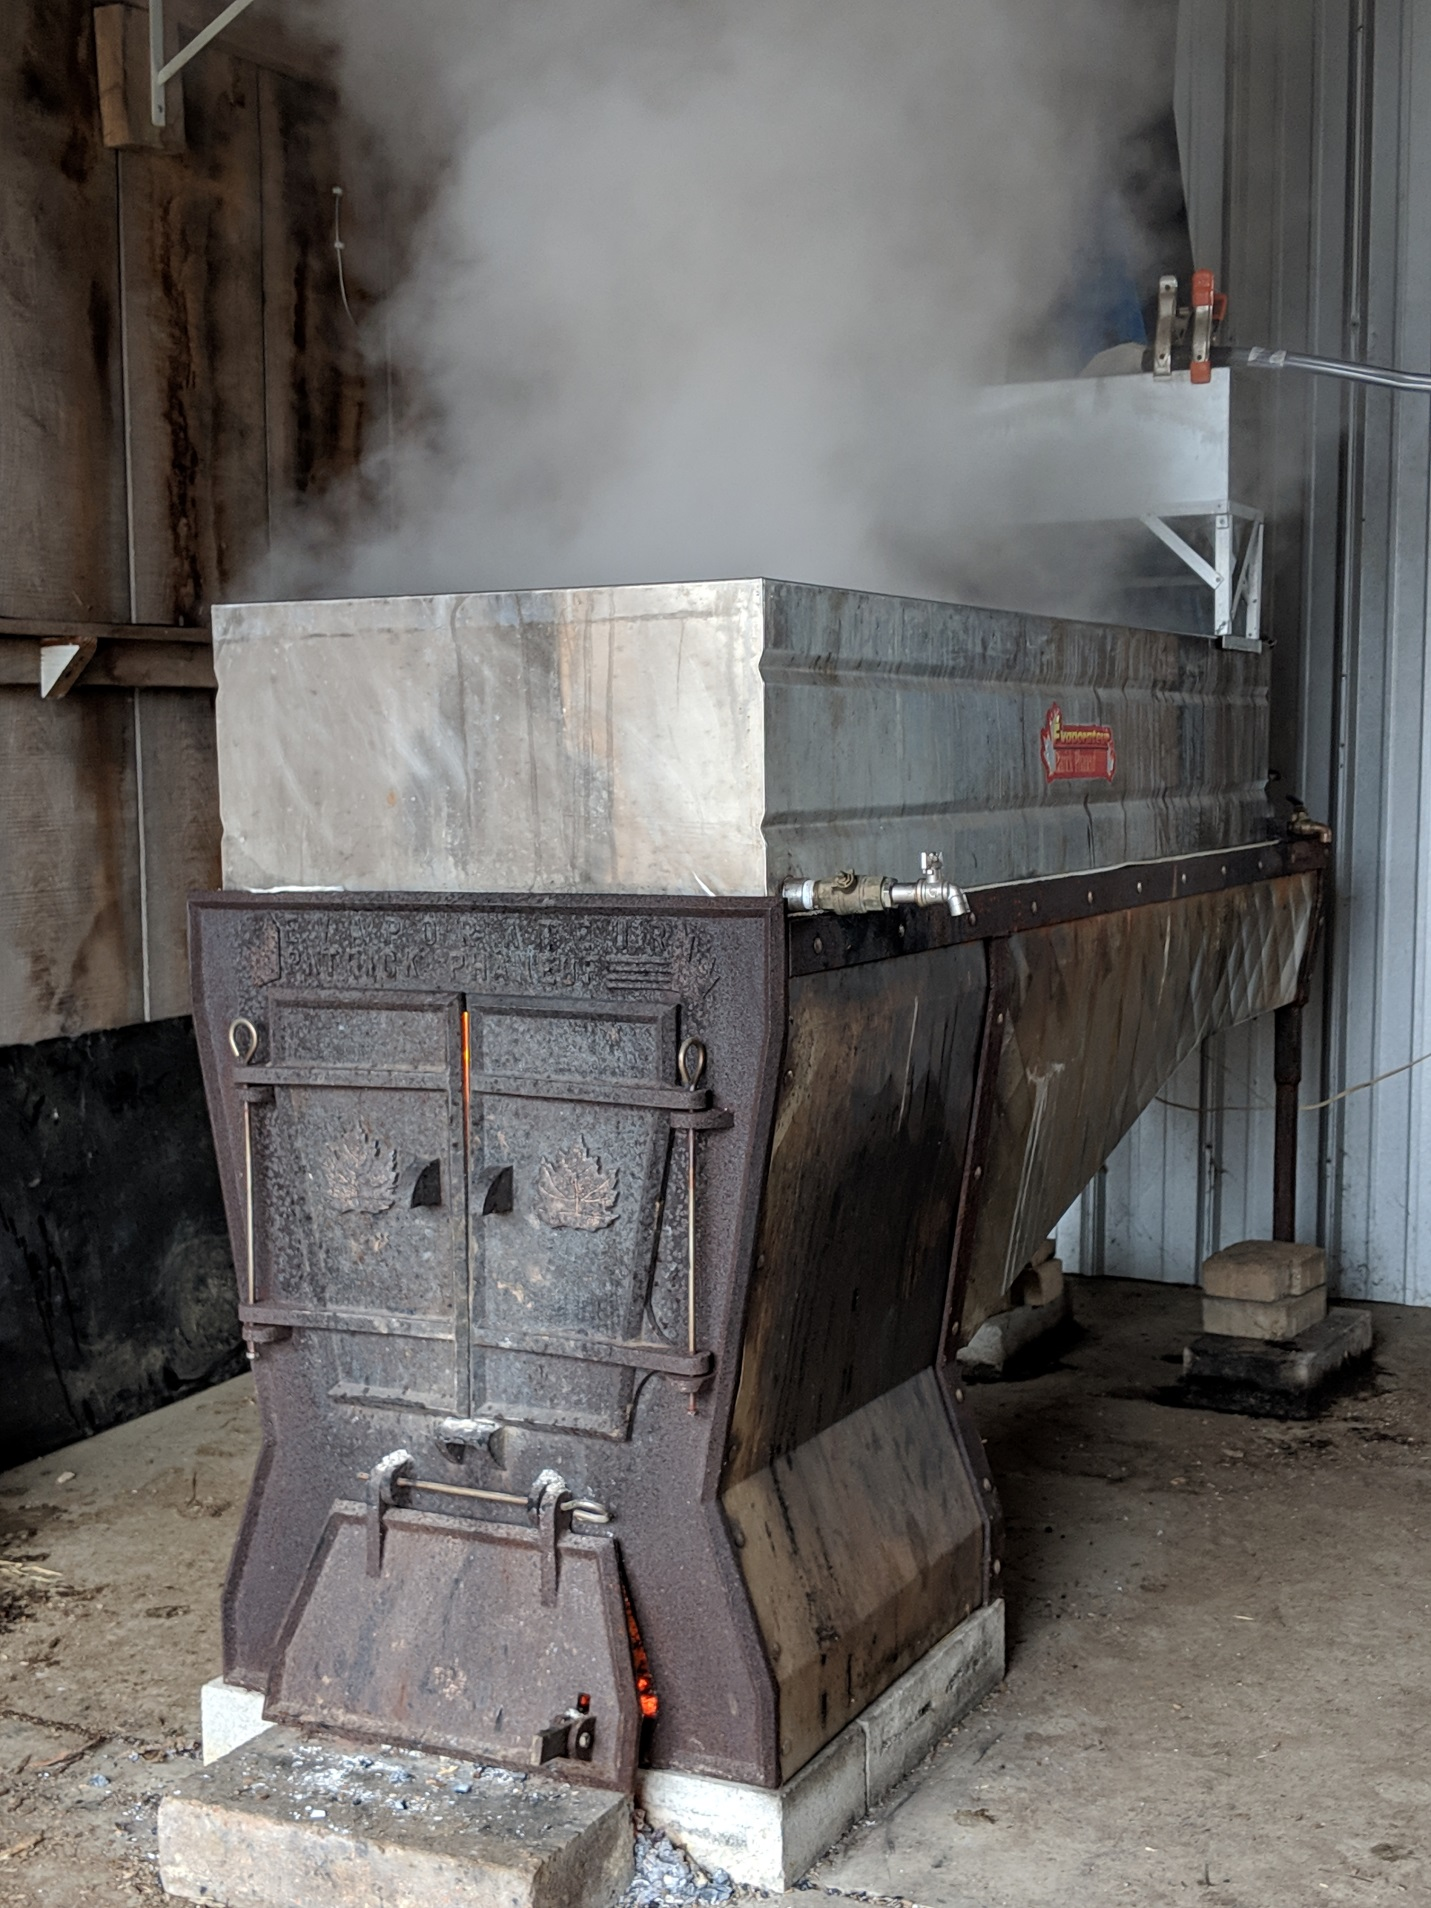 Evaporator boiling down maple sap into syrup.